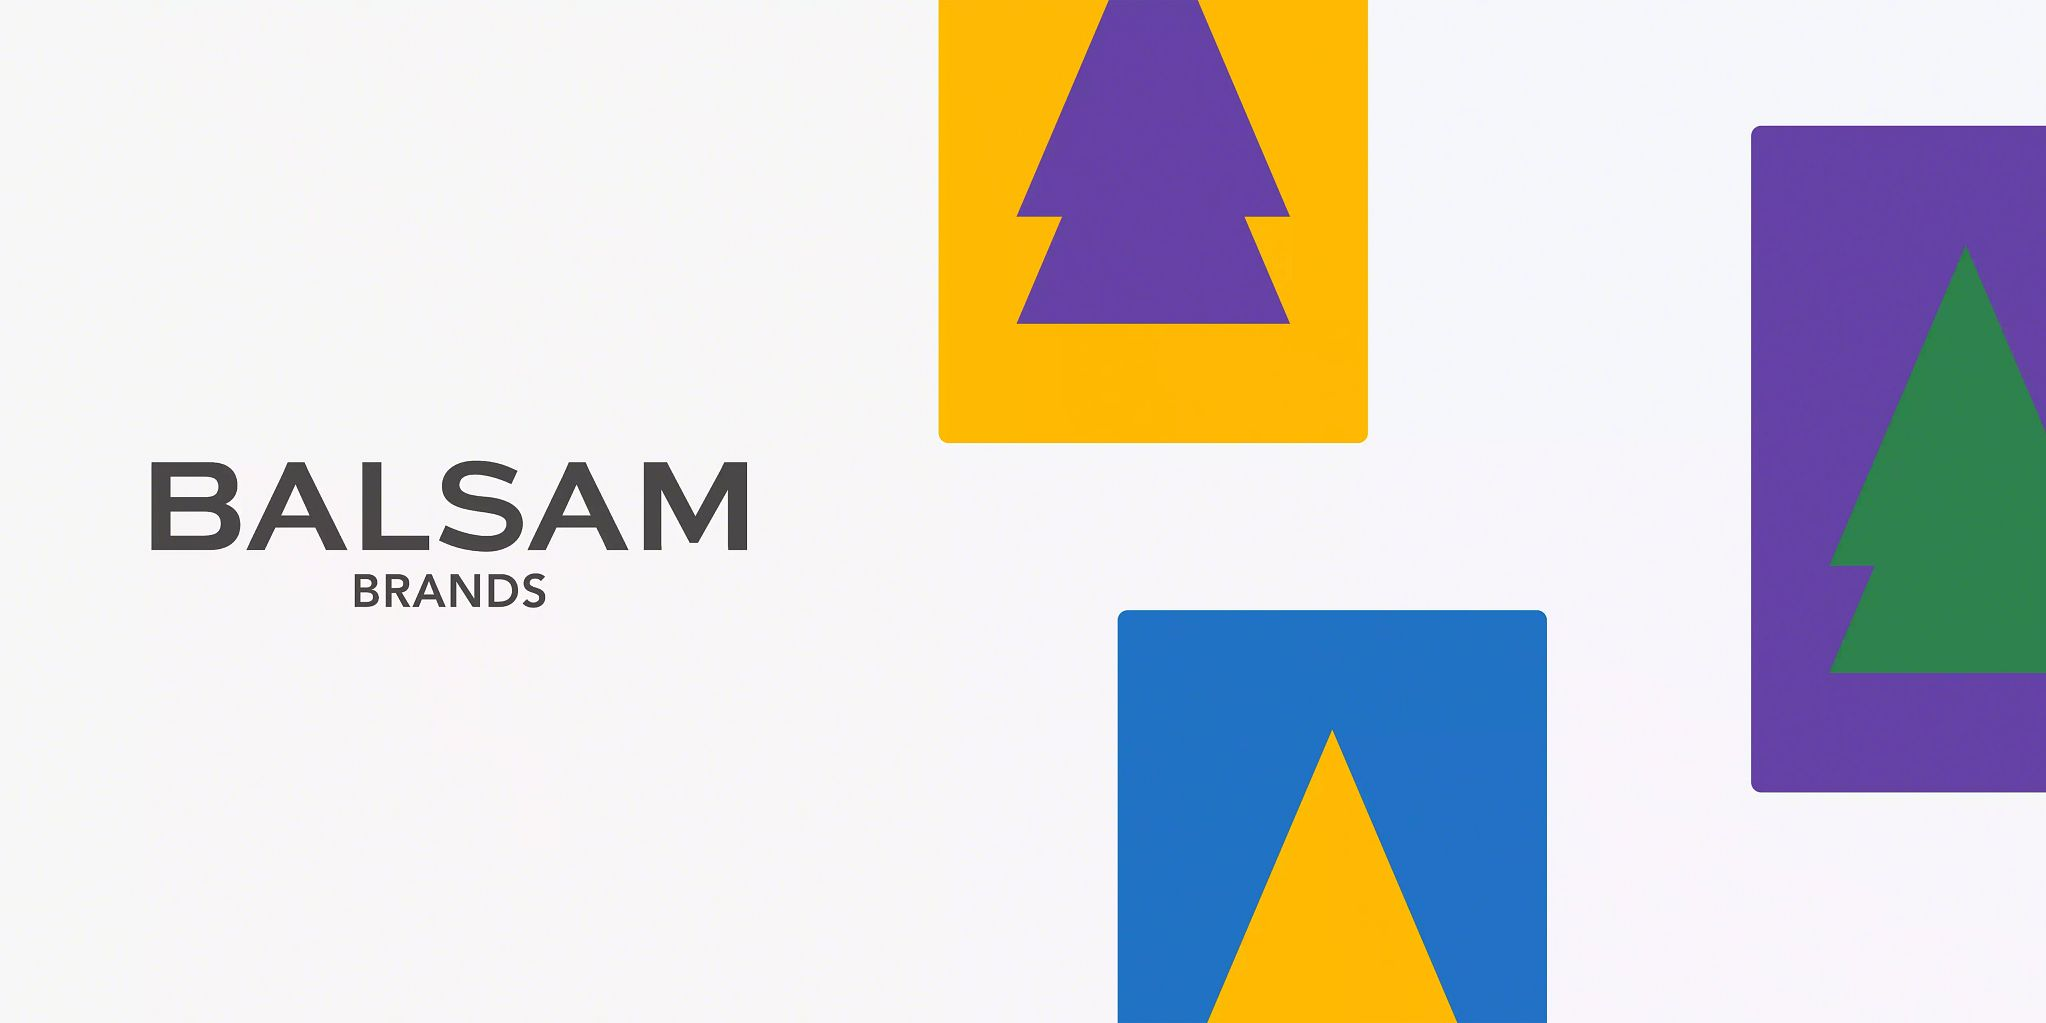 Balsam Brands logo on the left-center. With three graphic representations of pine trees on a square background on the right.